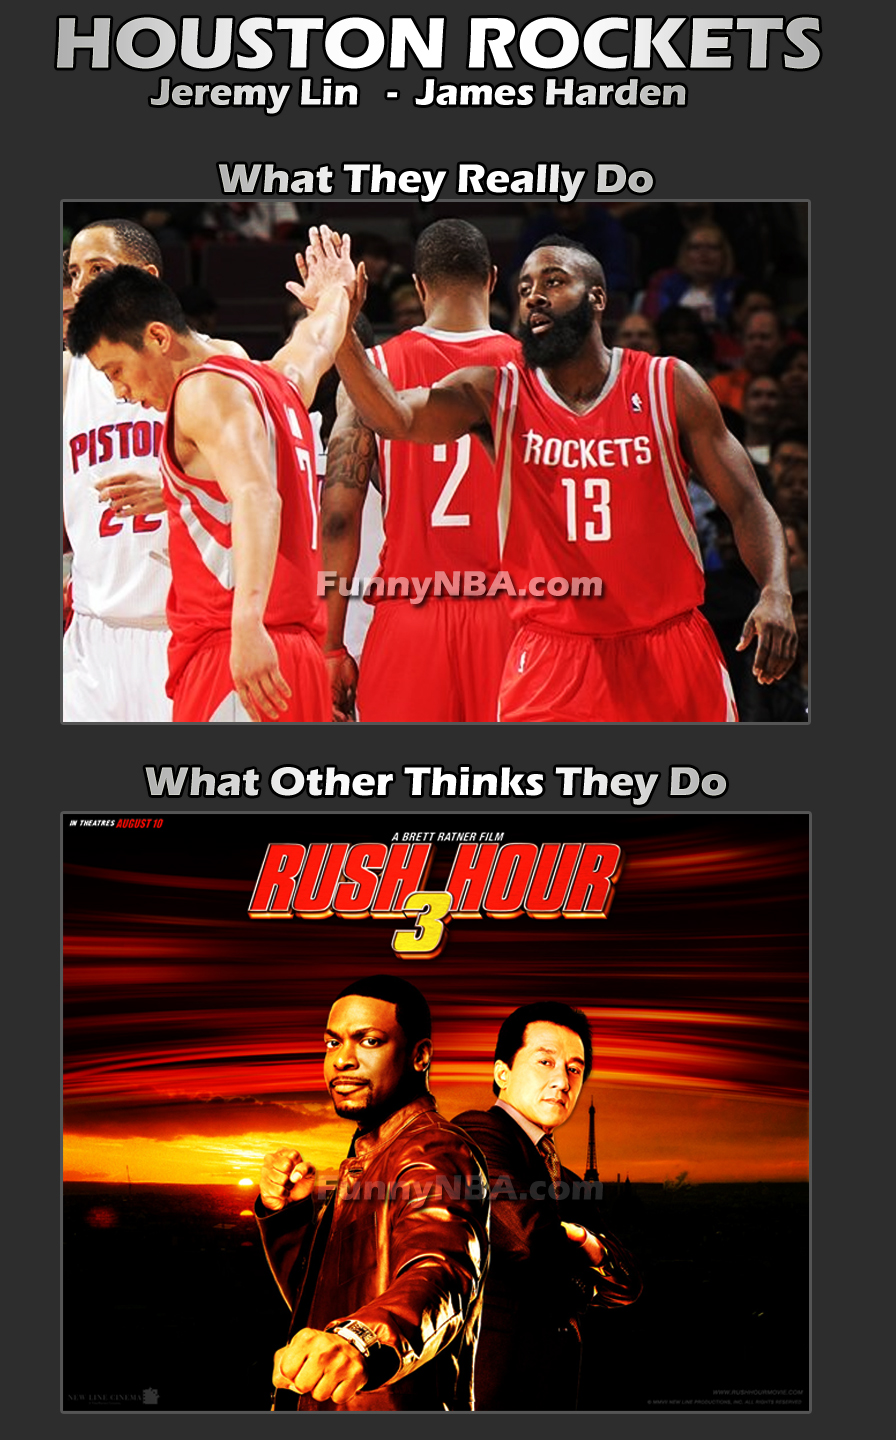 What They Think About Jeremy Lin and James HardenRush Hour 4 Jeremy Lin James Harden